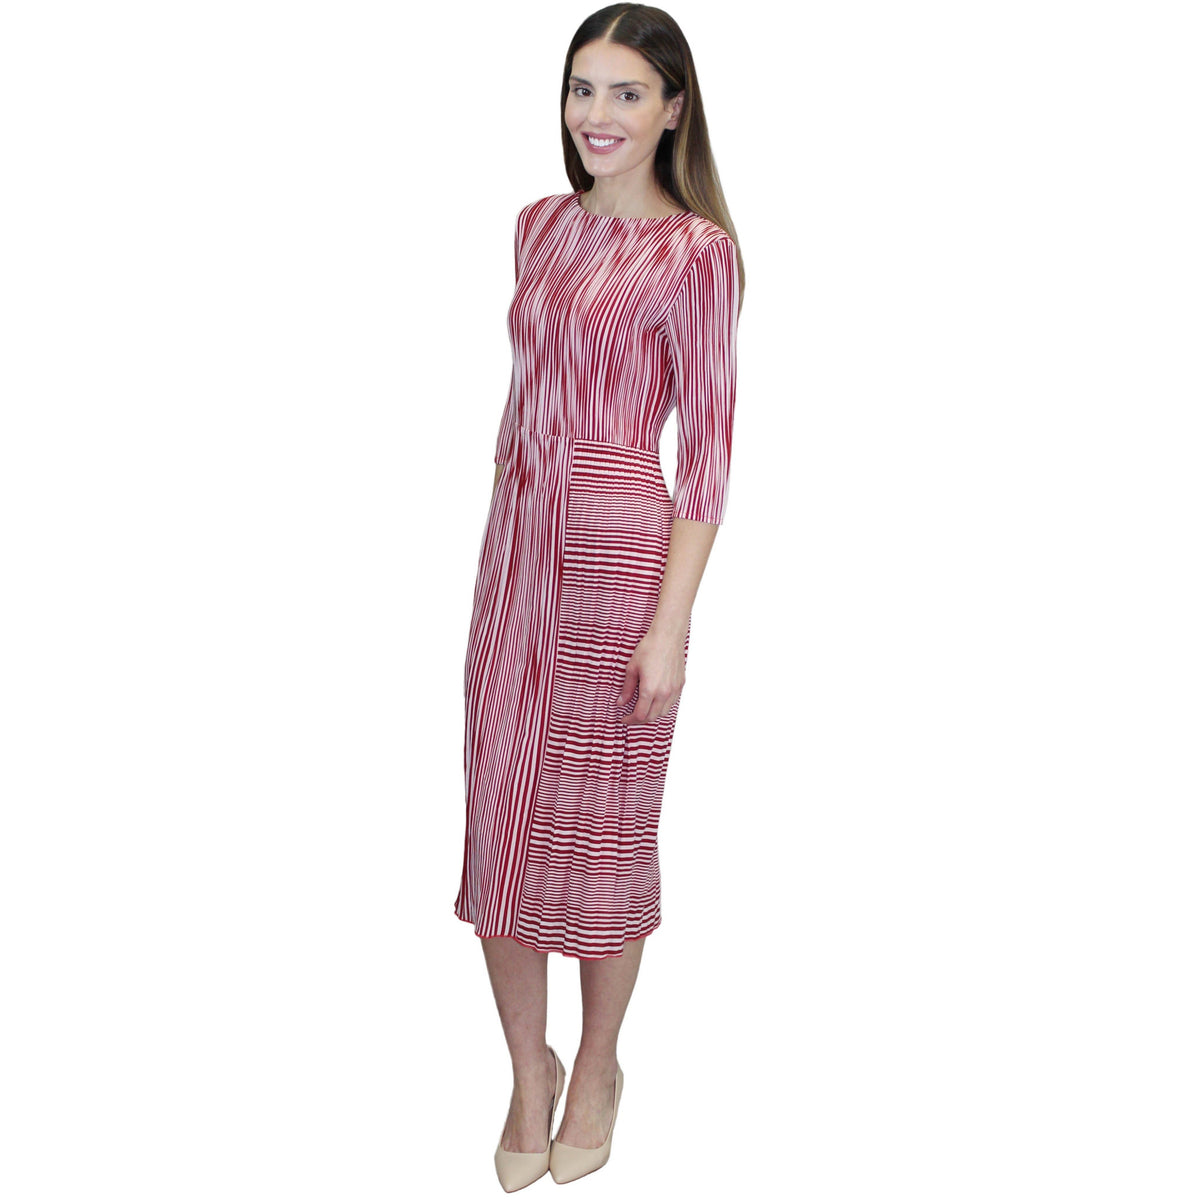 3/4 Sleeve Strip Crinkle Dress - Red and White